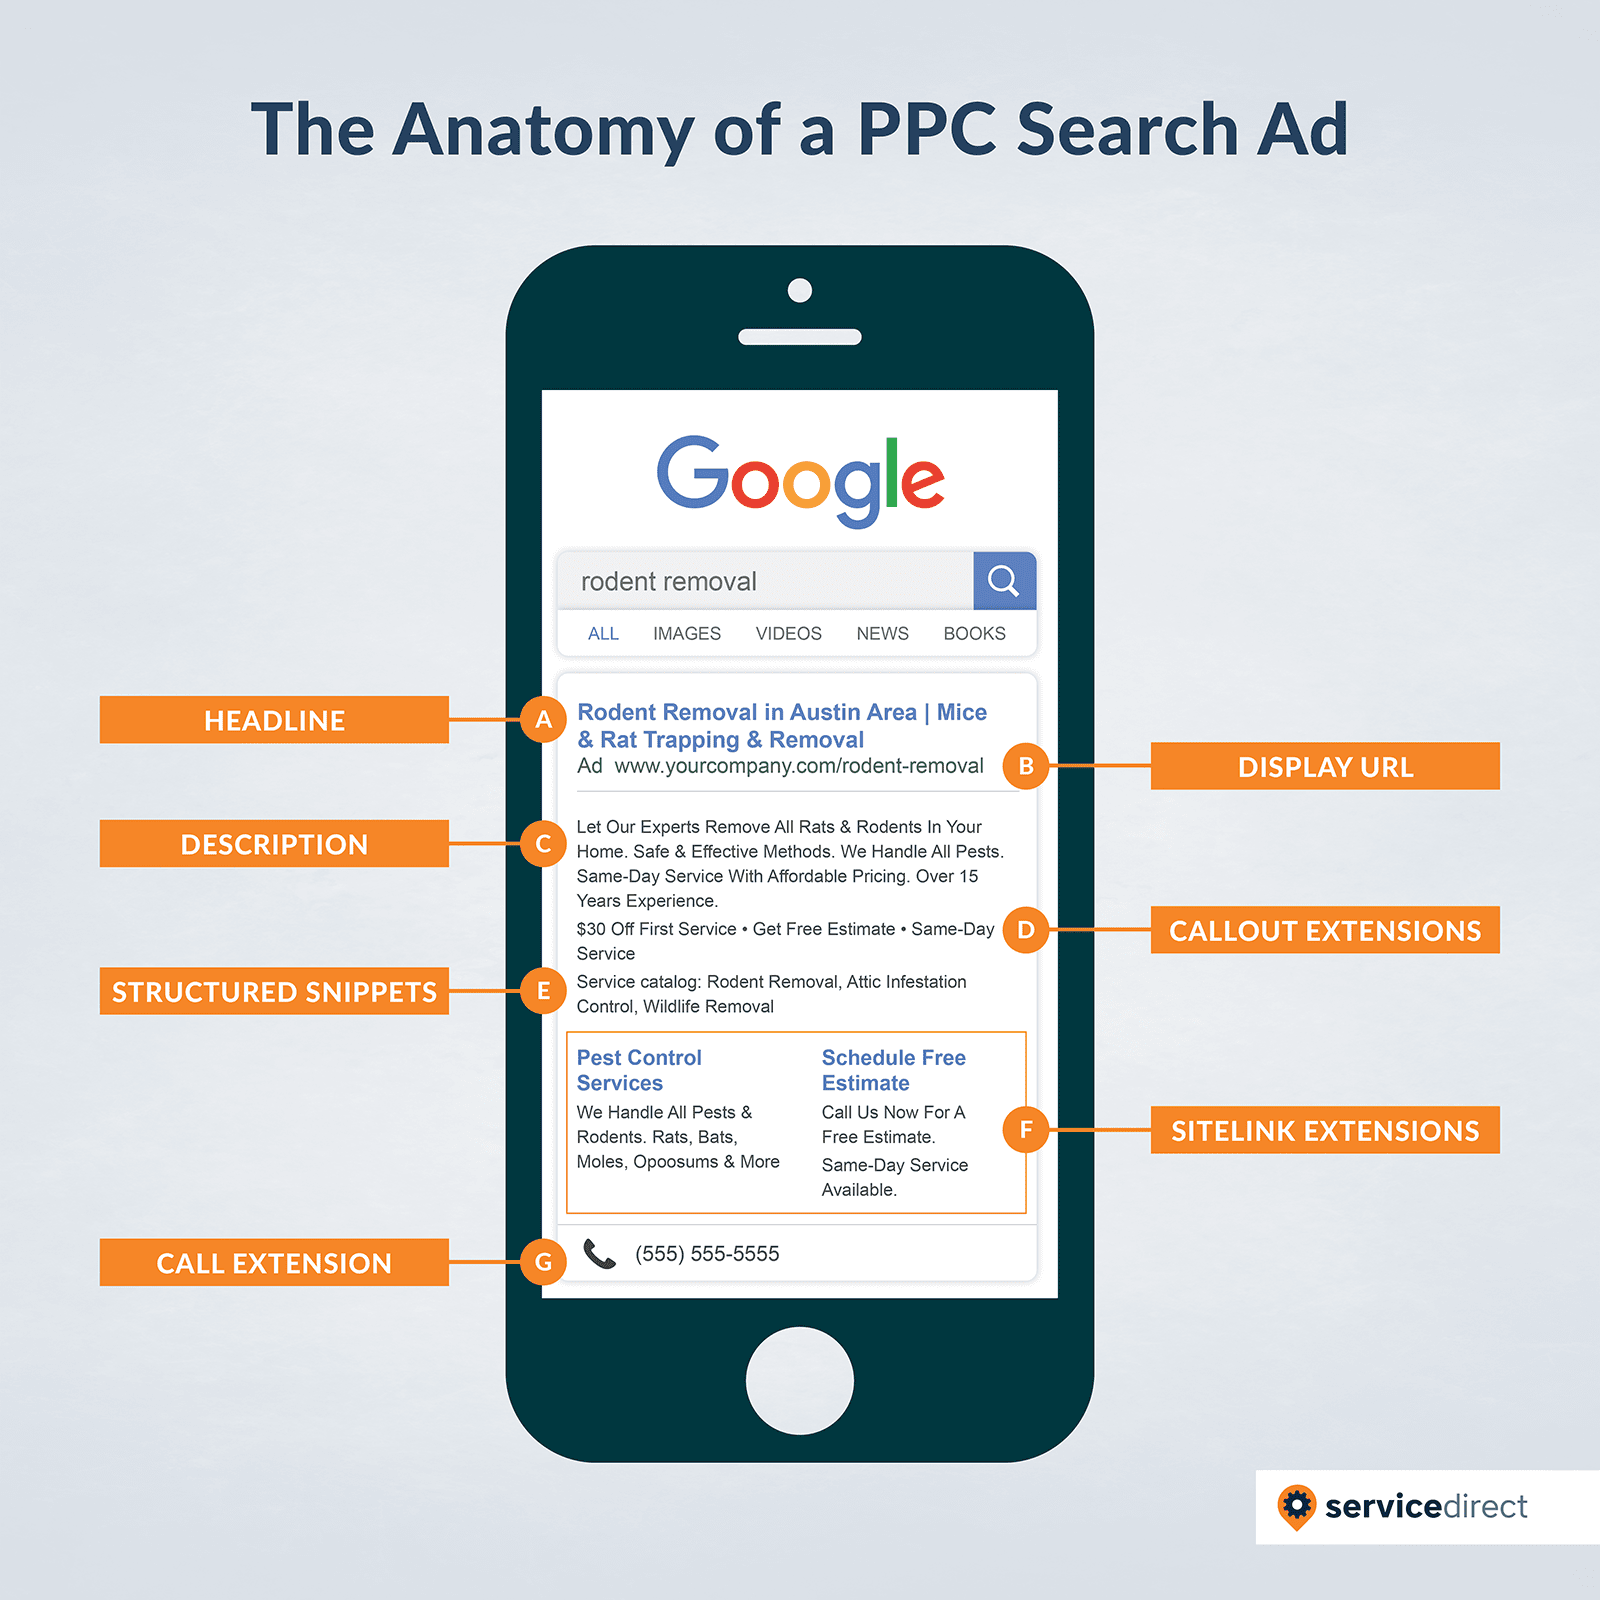 The Anatomy of a PPC Search Ad for Contractors